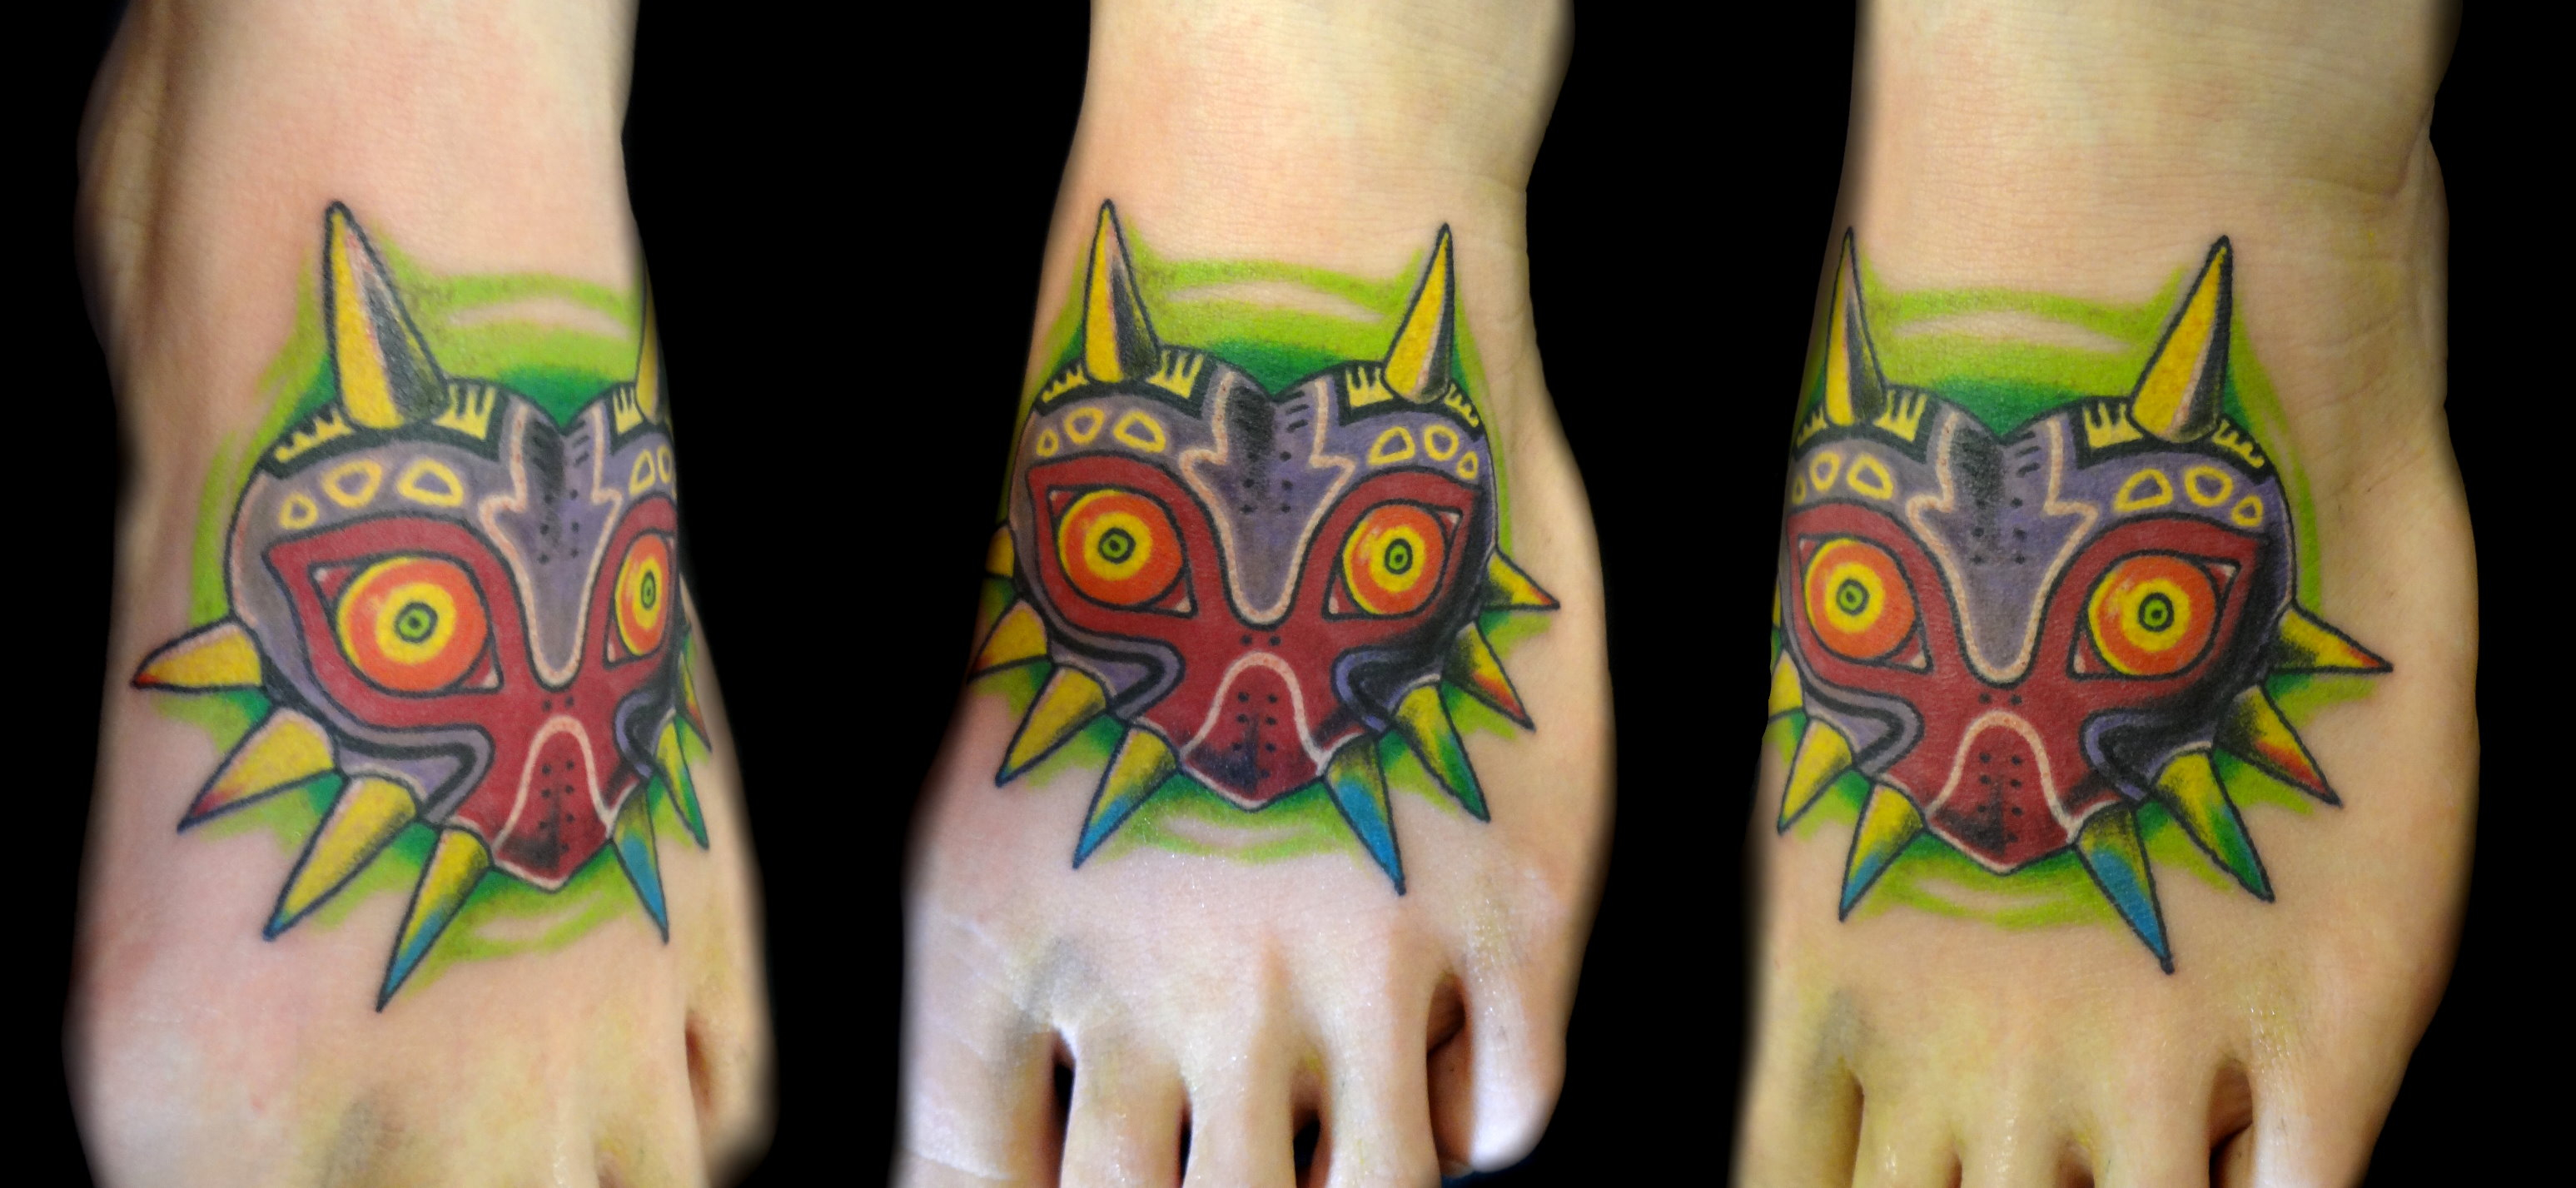 majora's mask - left foot